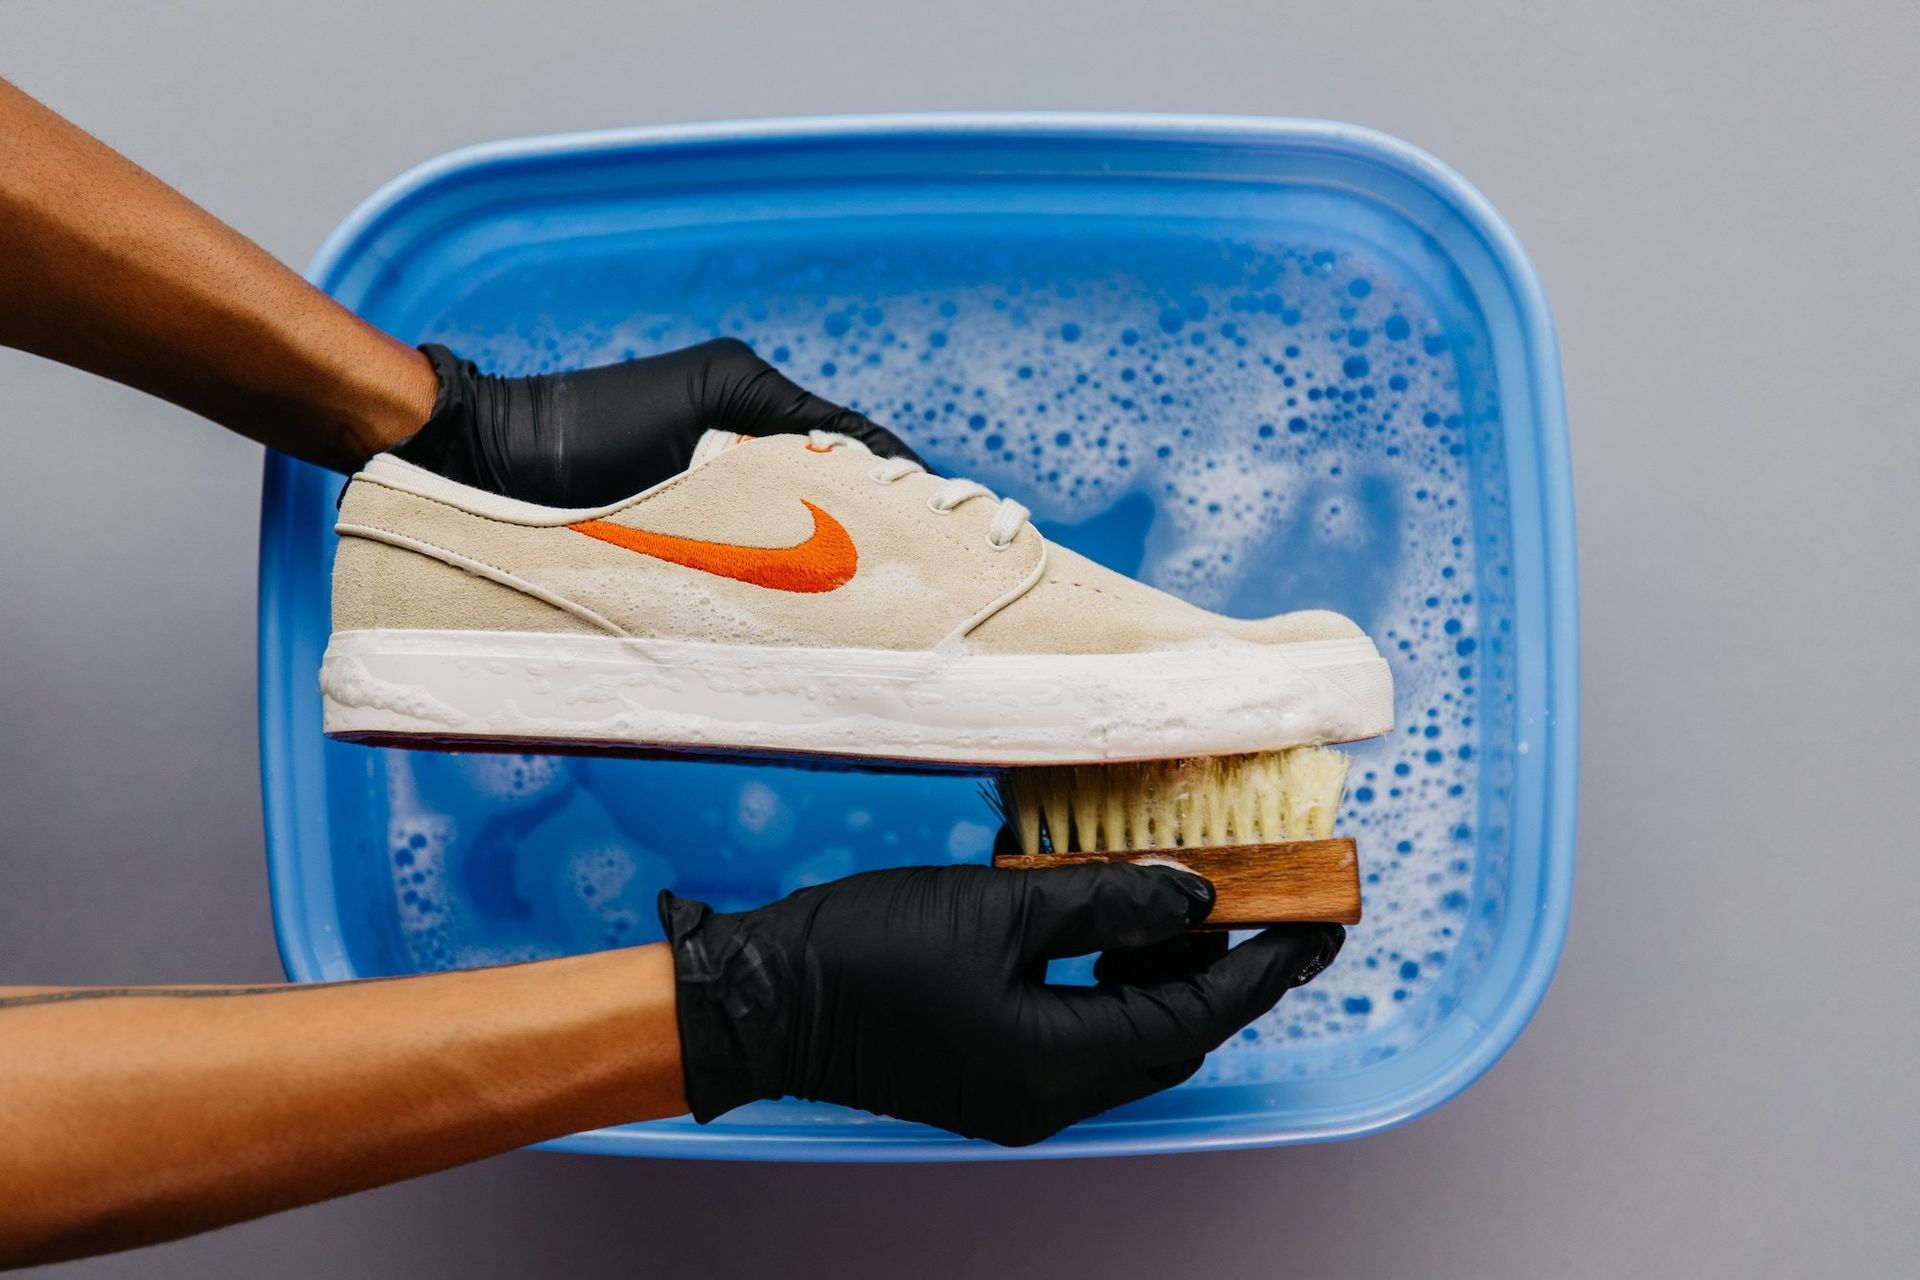 How Do I Clean My Shoes? | Nike Help